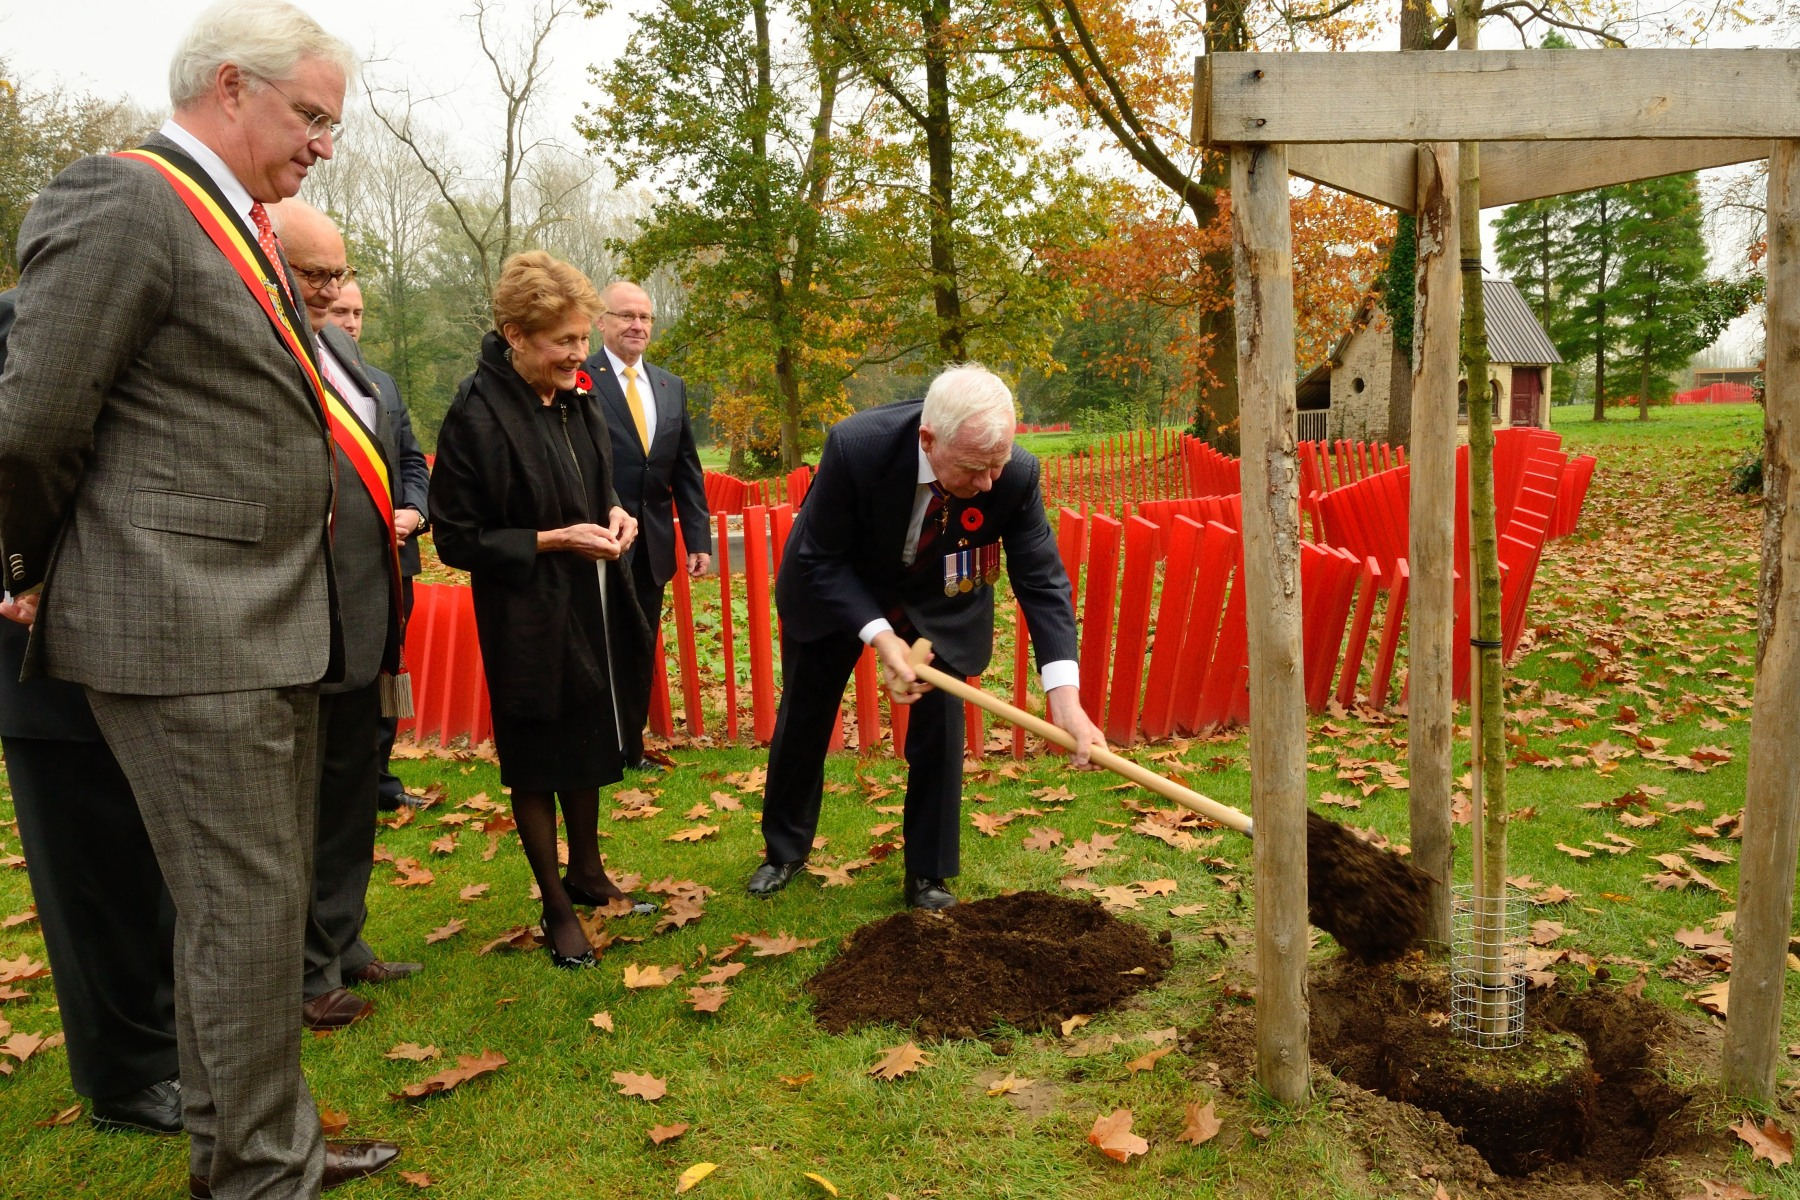 Following their visit, Their Excellencies planted a Canadian sugar maple tree in the new Canadian poppy garden on the grounds of the museum's chateau. The garden opened in August 2014.